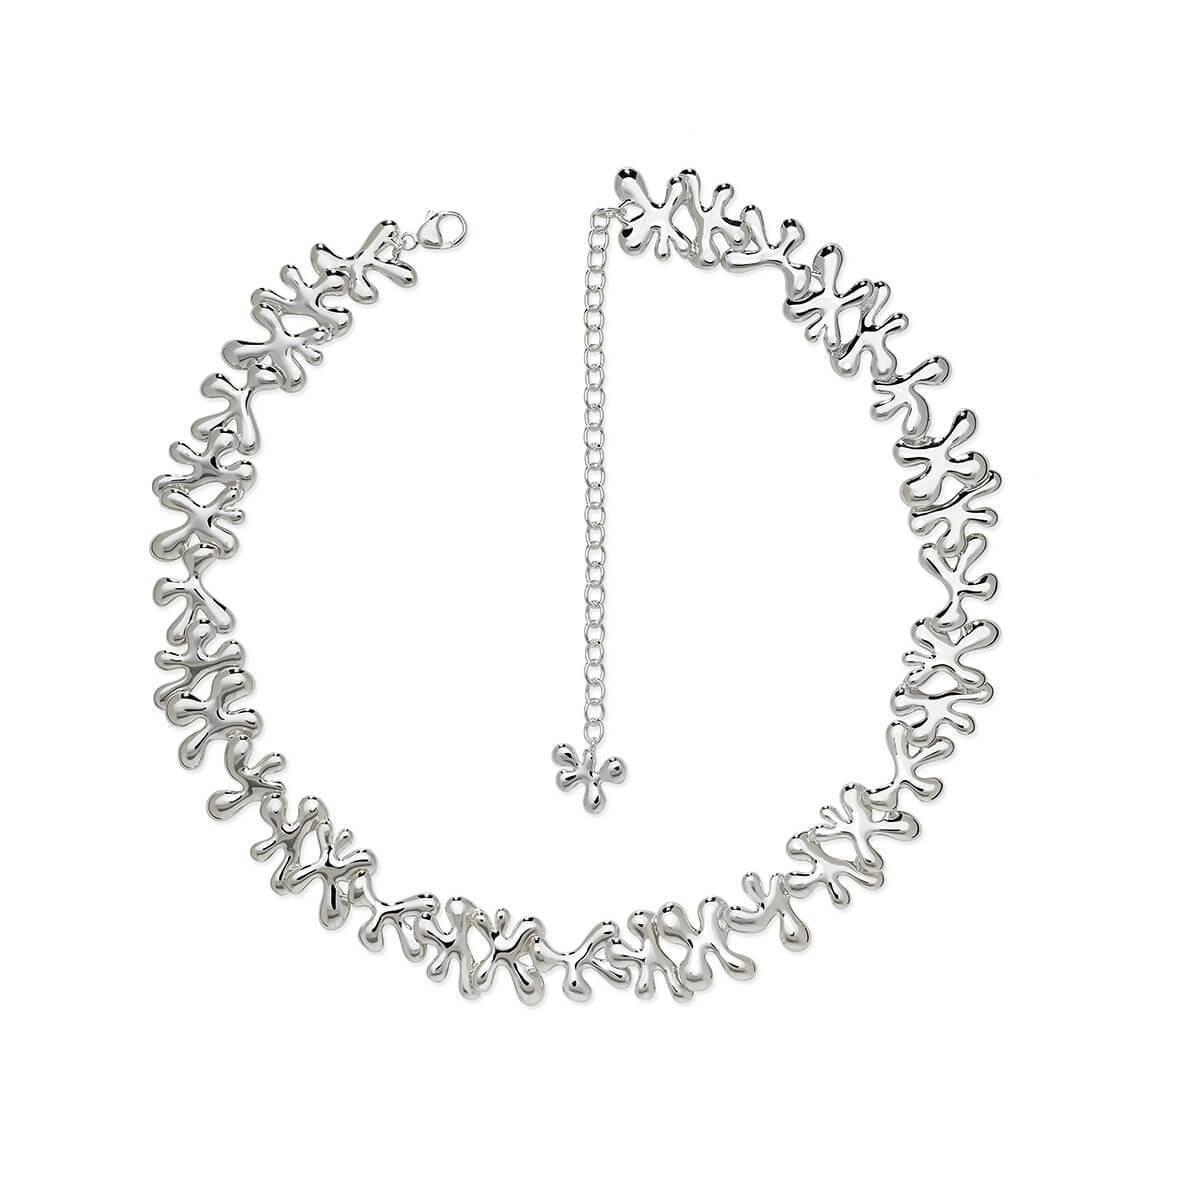 Lucy Quartermaine Drop Necklace With T Bar EzWWN5rIw0